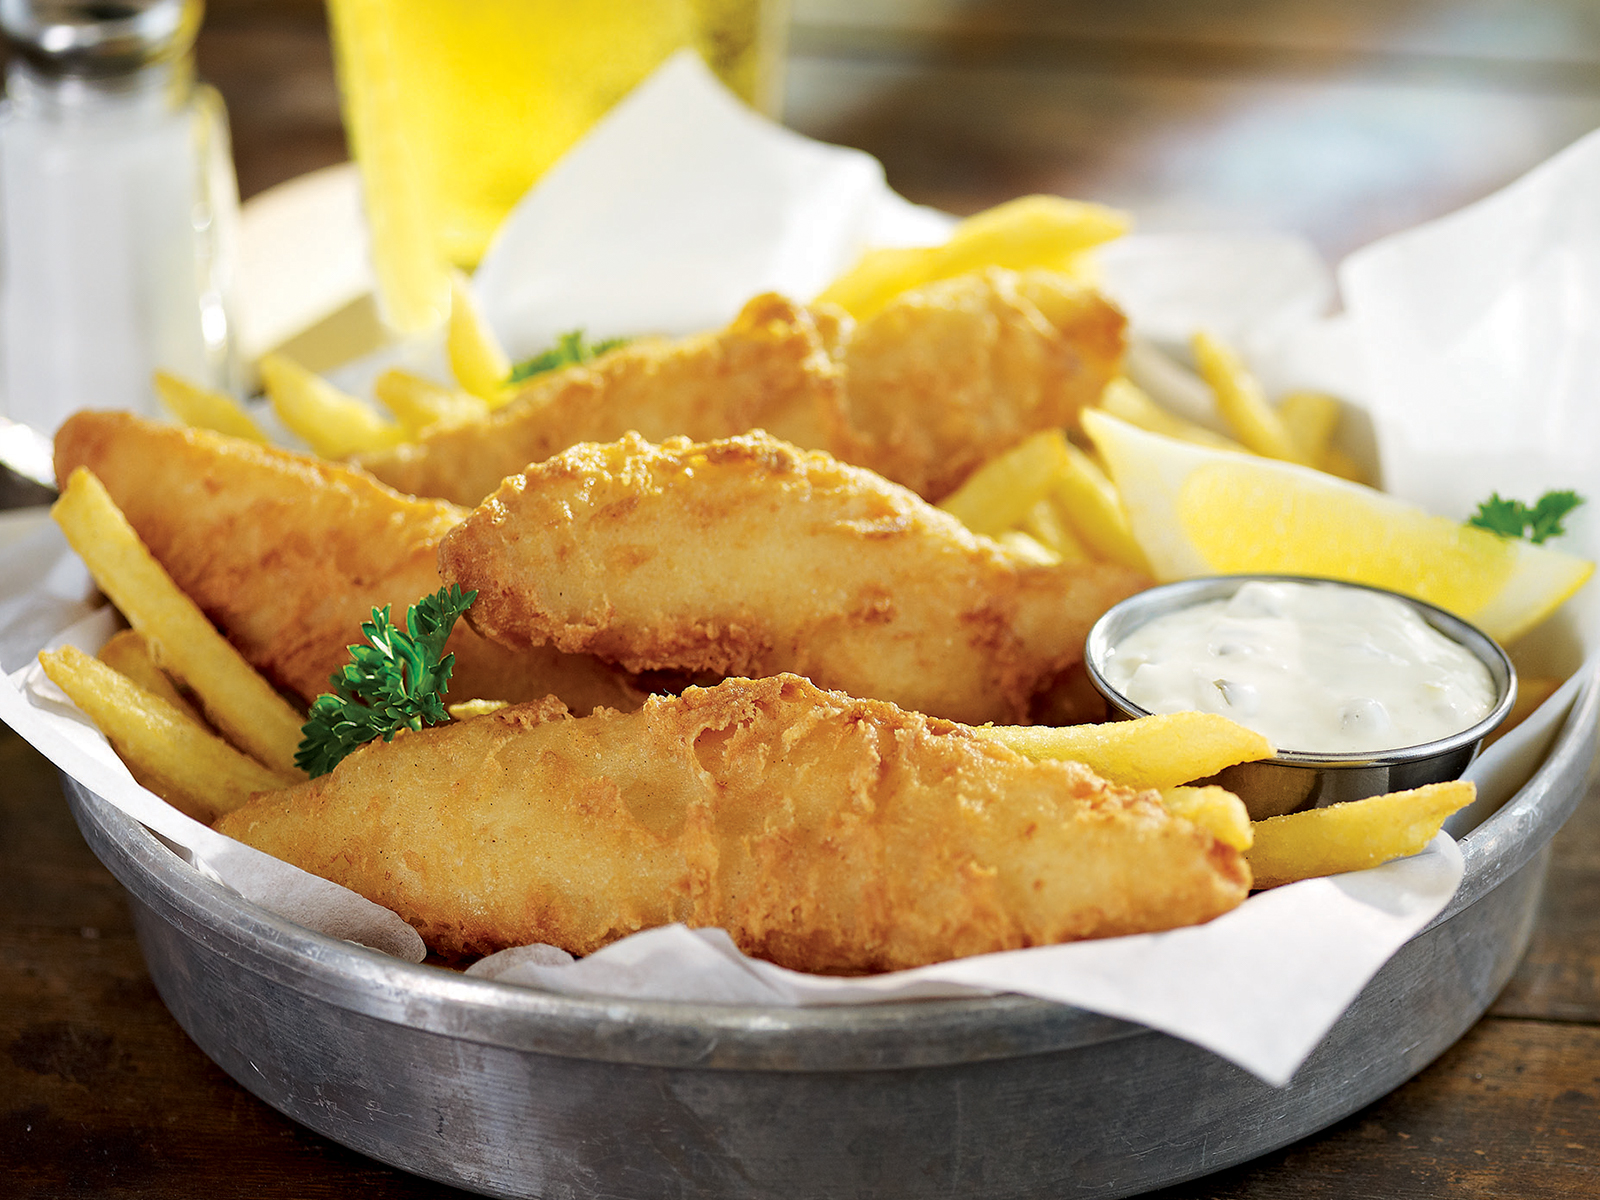 Pubhouse® Golden Ale Beer Battered Cod 4oz (1-10 lb) 418442